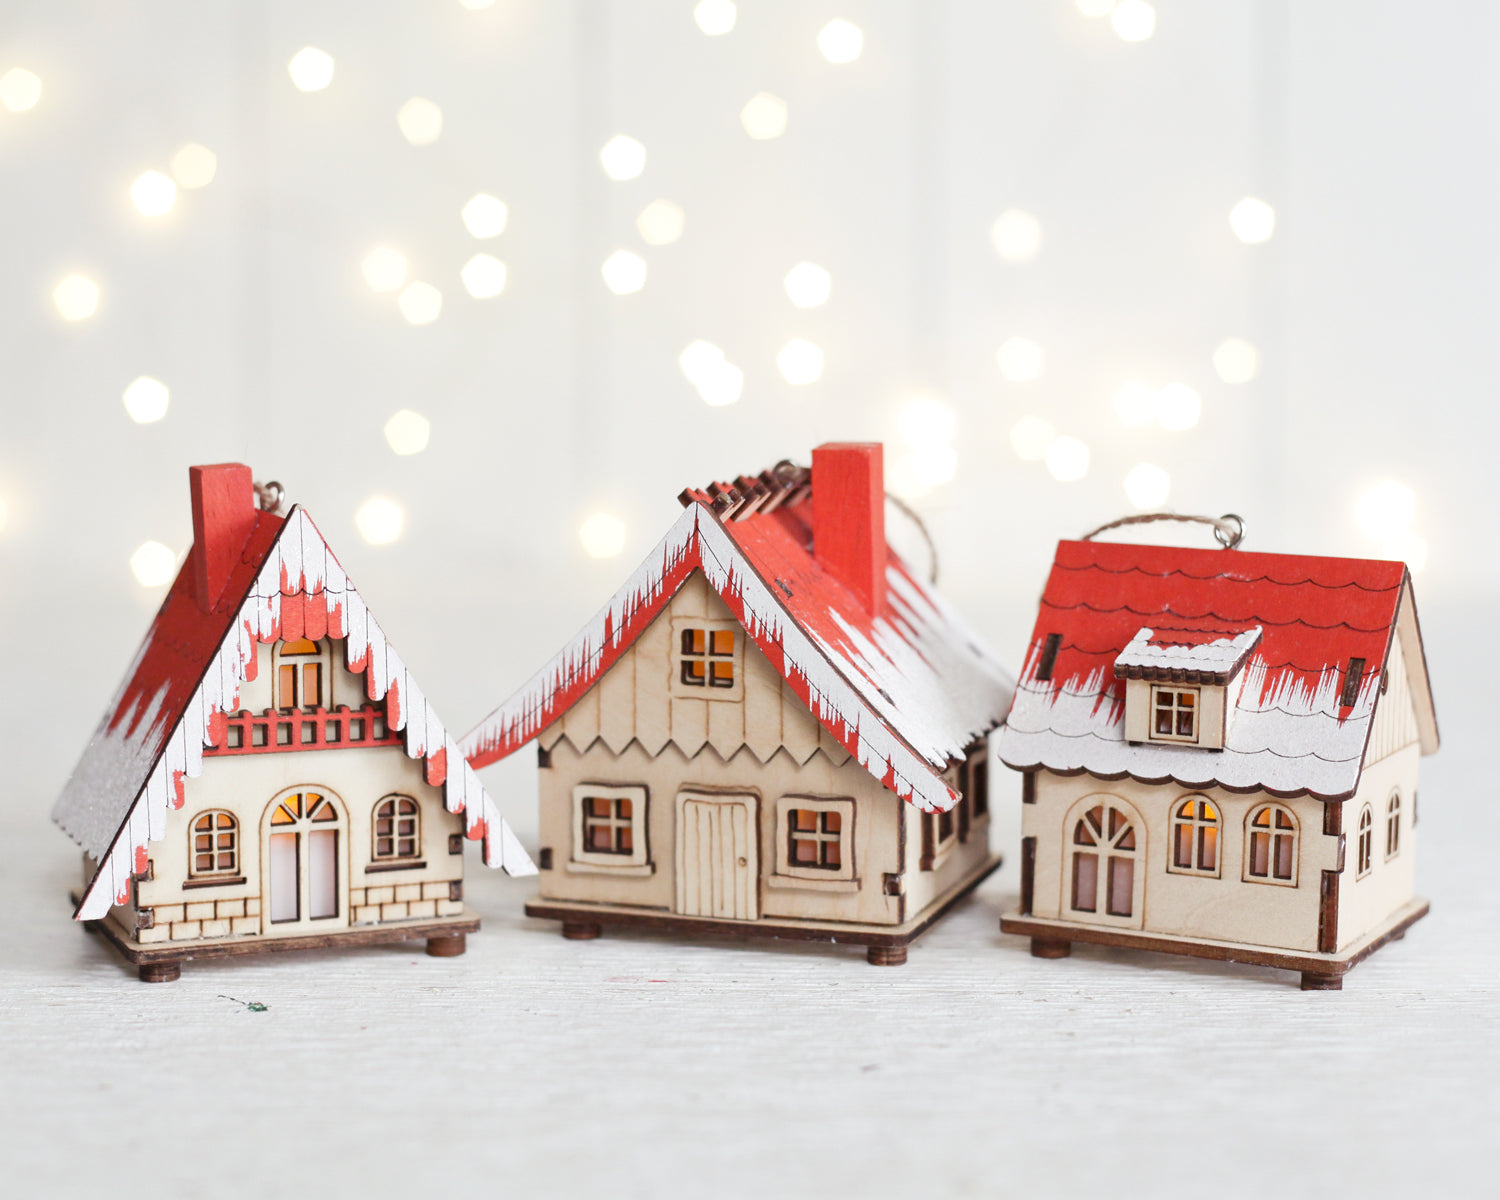 Christmas Houses.Alpine Village Houses Set Of 3 Lighted Wooden Christmas House Ornaments